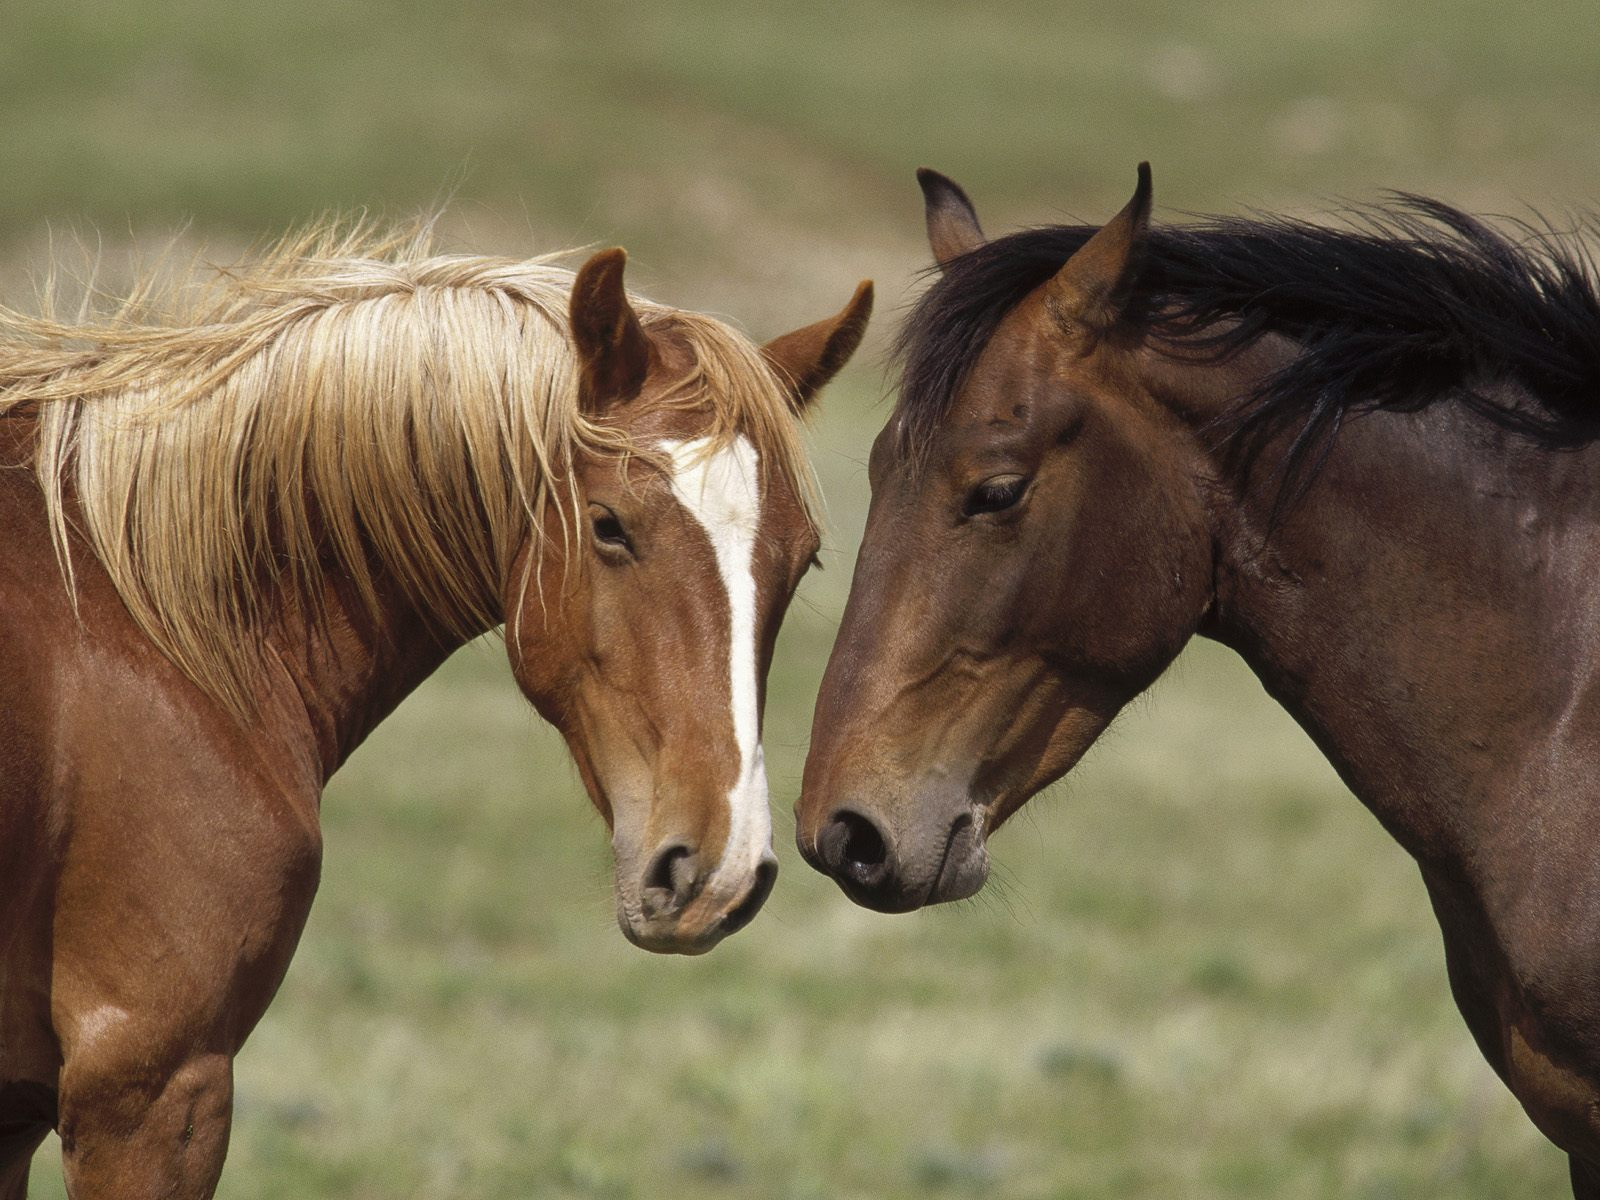 Horse Wallpapers Pictures of Horse   Animal Photo Pictures Of Horses